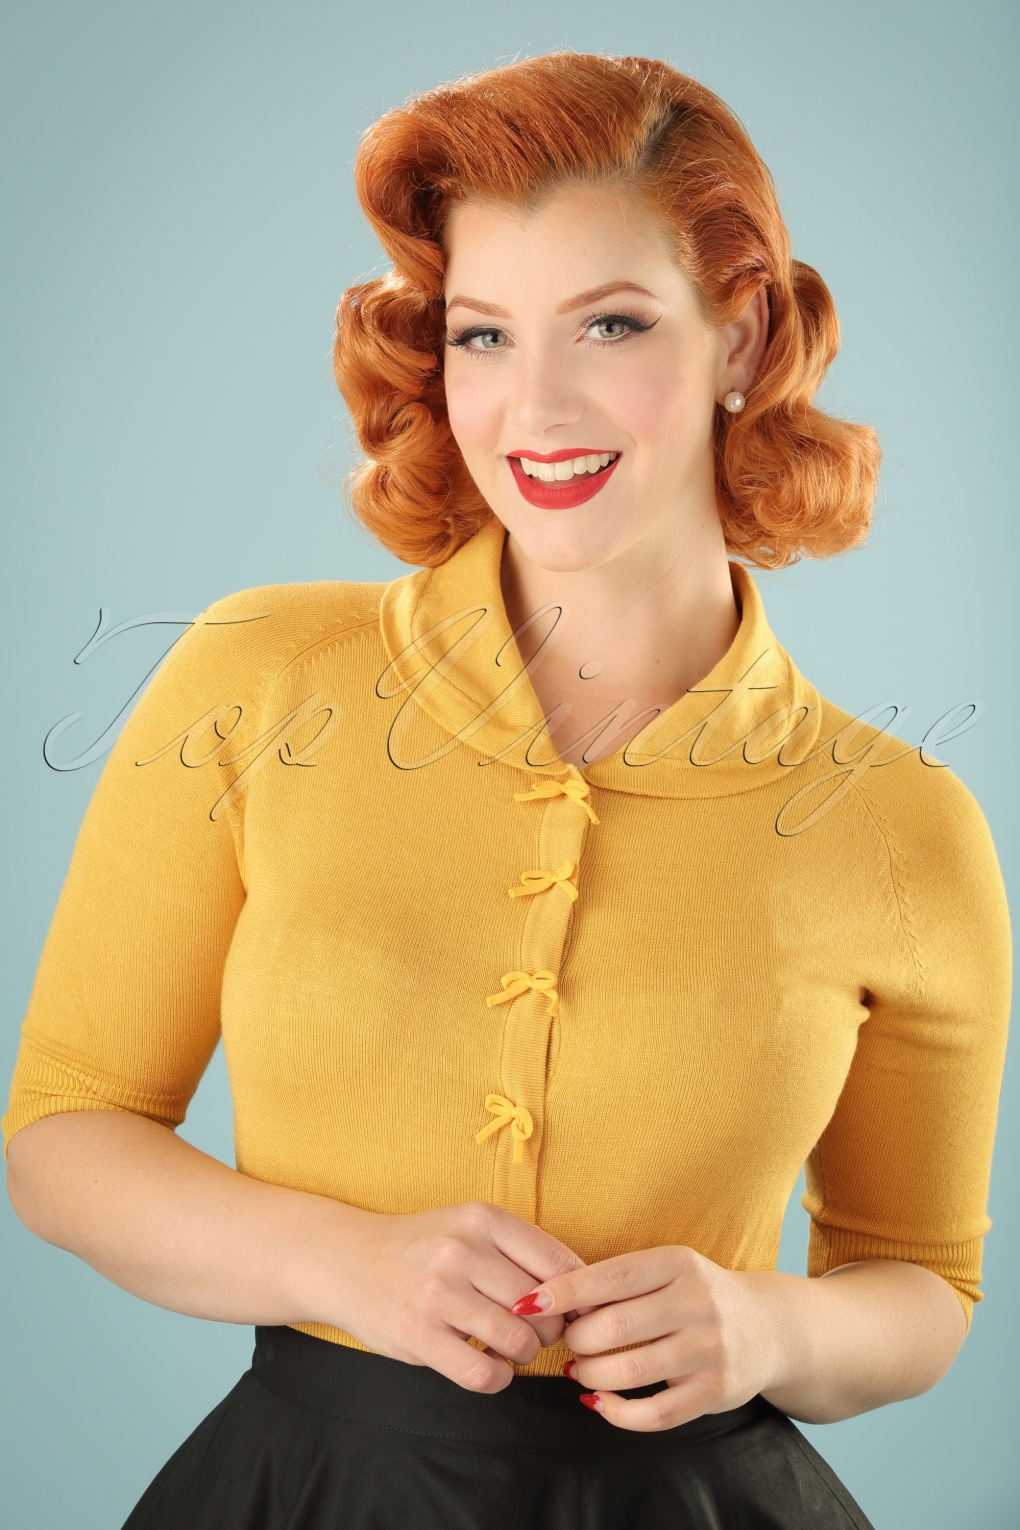 Vintage & Retro Shirts, Halter Tops, Blouses 40s April Bow Cardigan in Mustard Yellow £34.06 AT vintagedancer.com